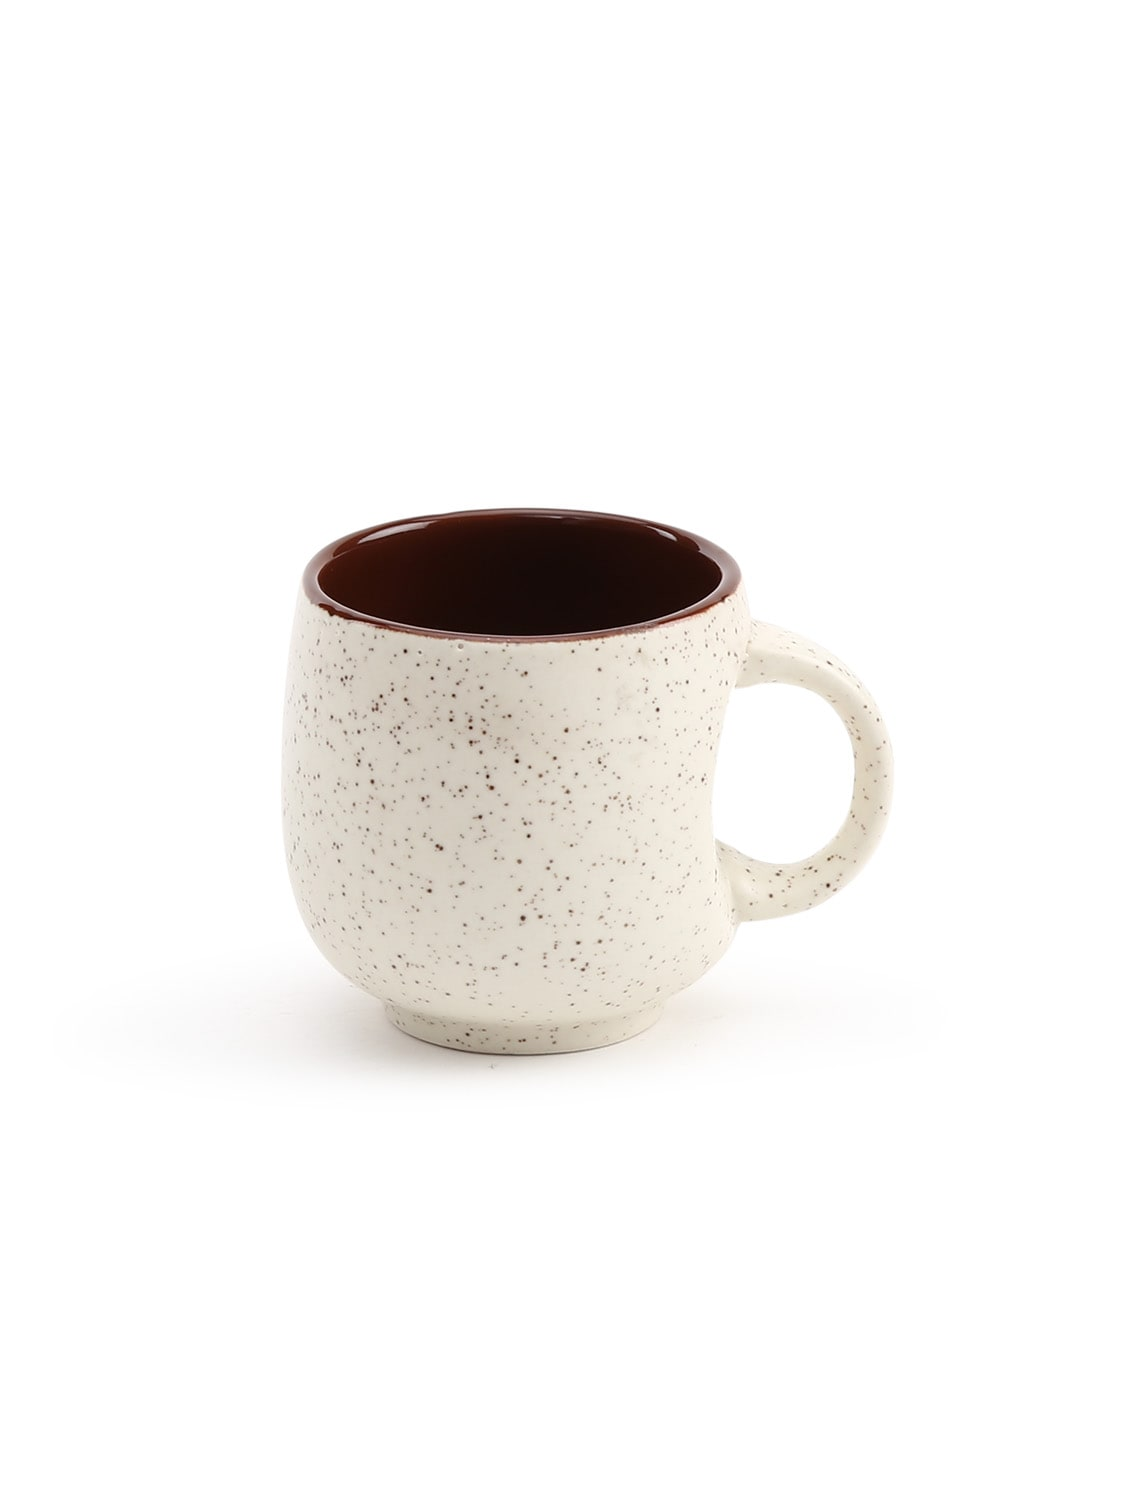 White Ceramic Coffee Cups Buy Speckled White Multi Color Ceramic Tea Cups Coffee